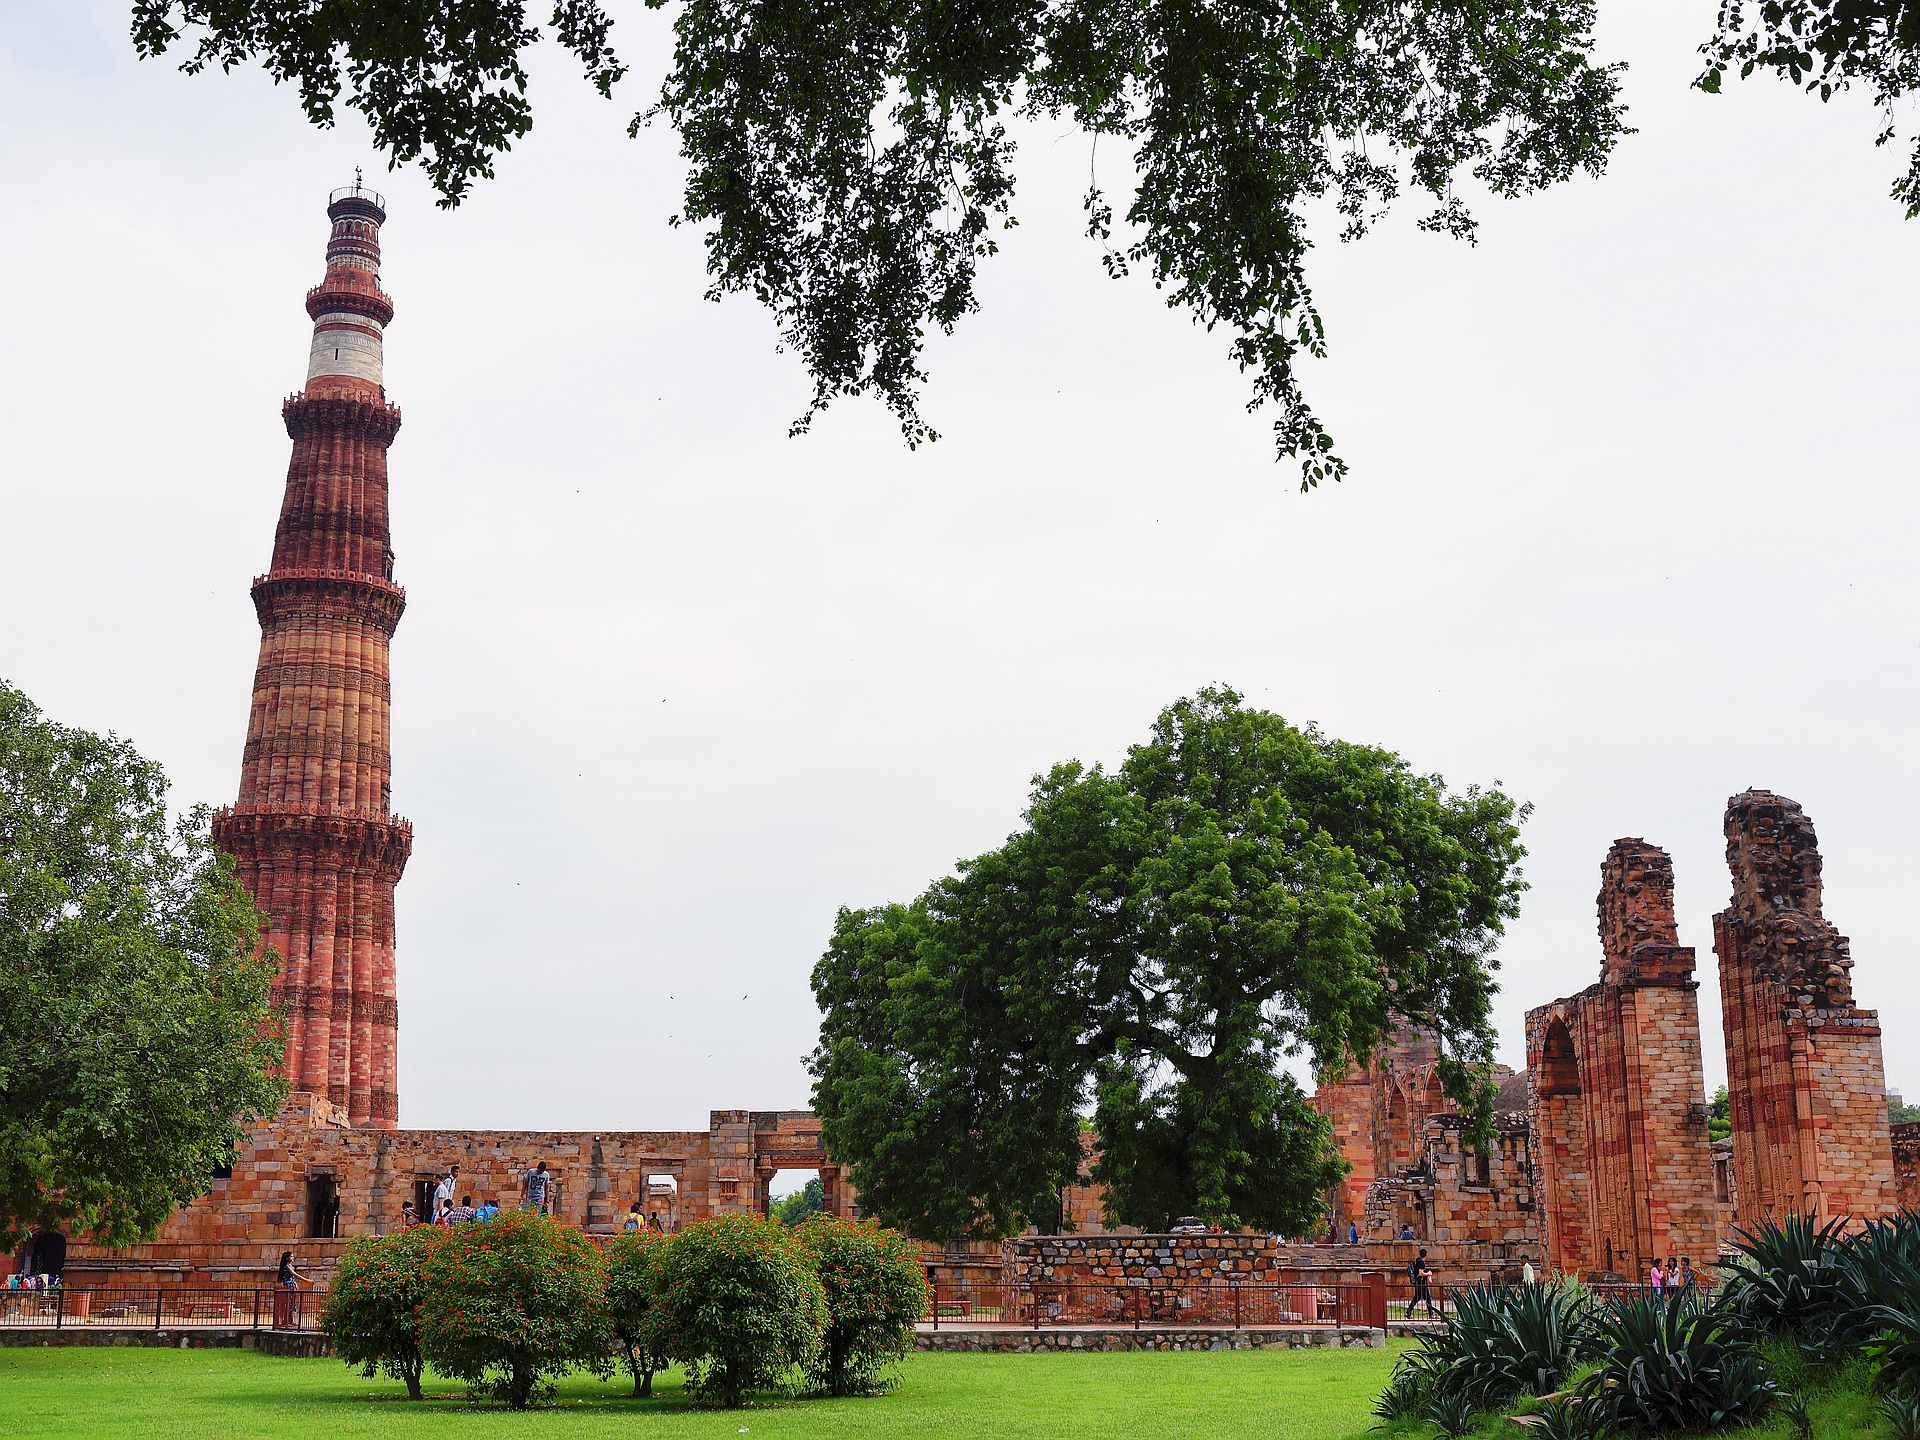 The archaeological complex of Qutub Minar in New Delhi